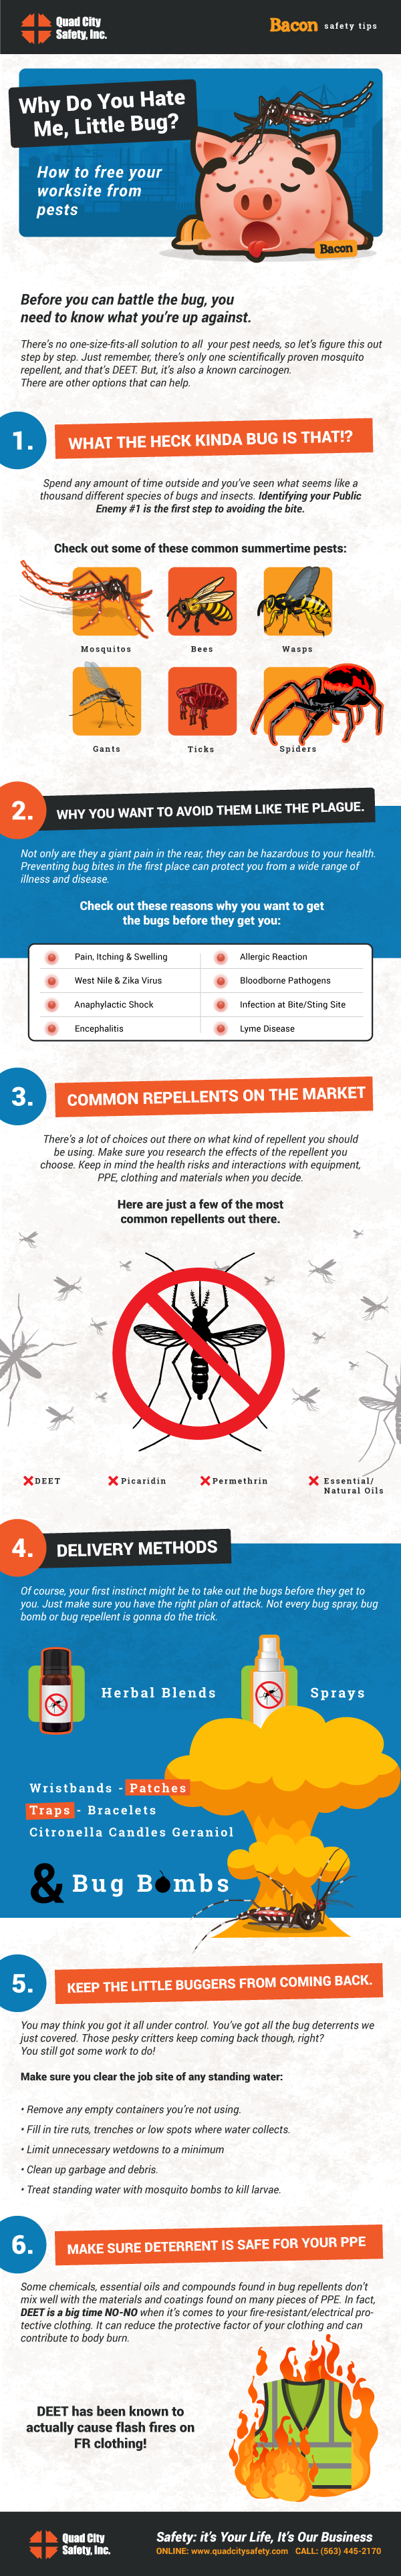 Bacon's-Safety-Tips-C05-Bug-Spray-Infographic